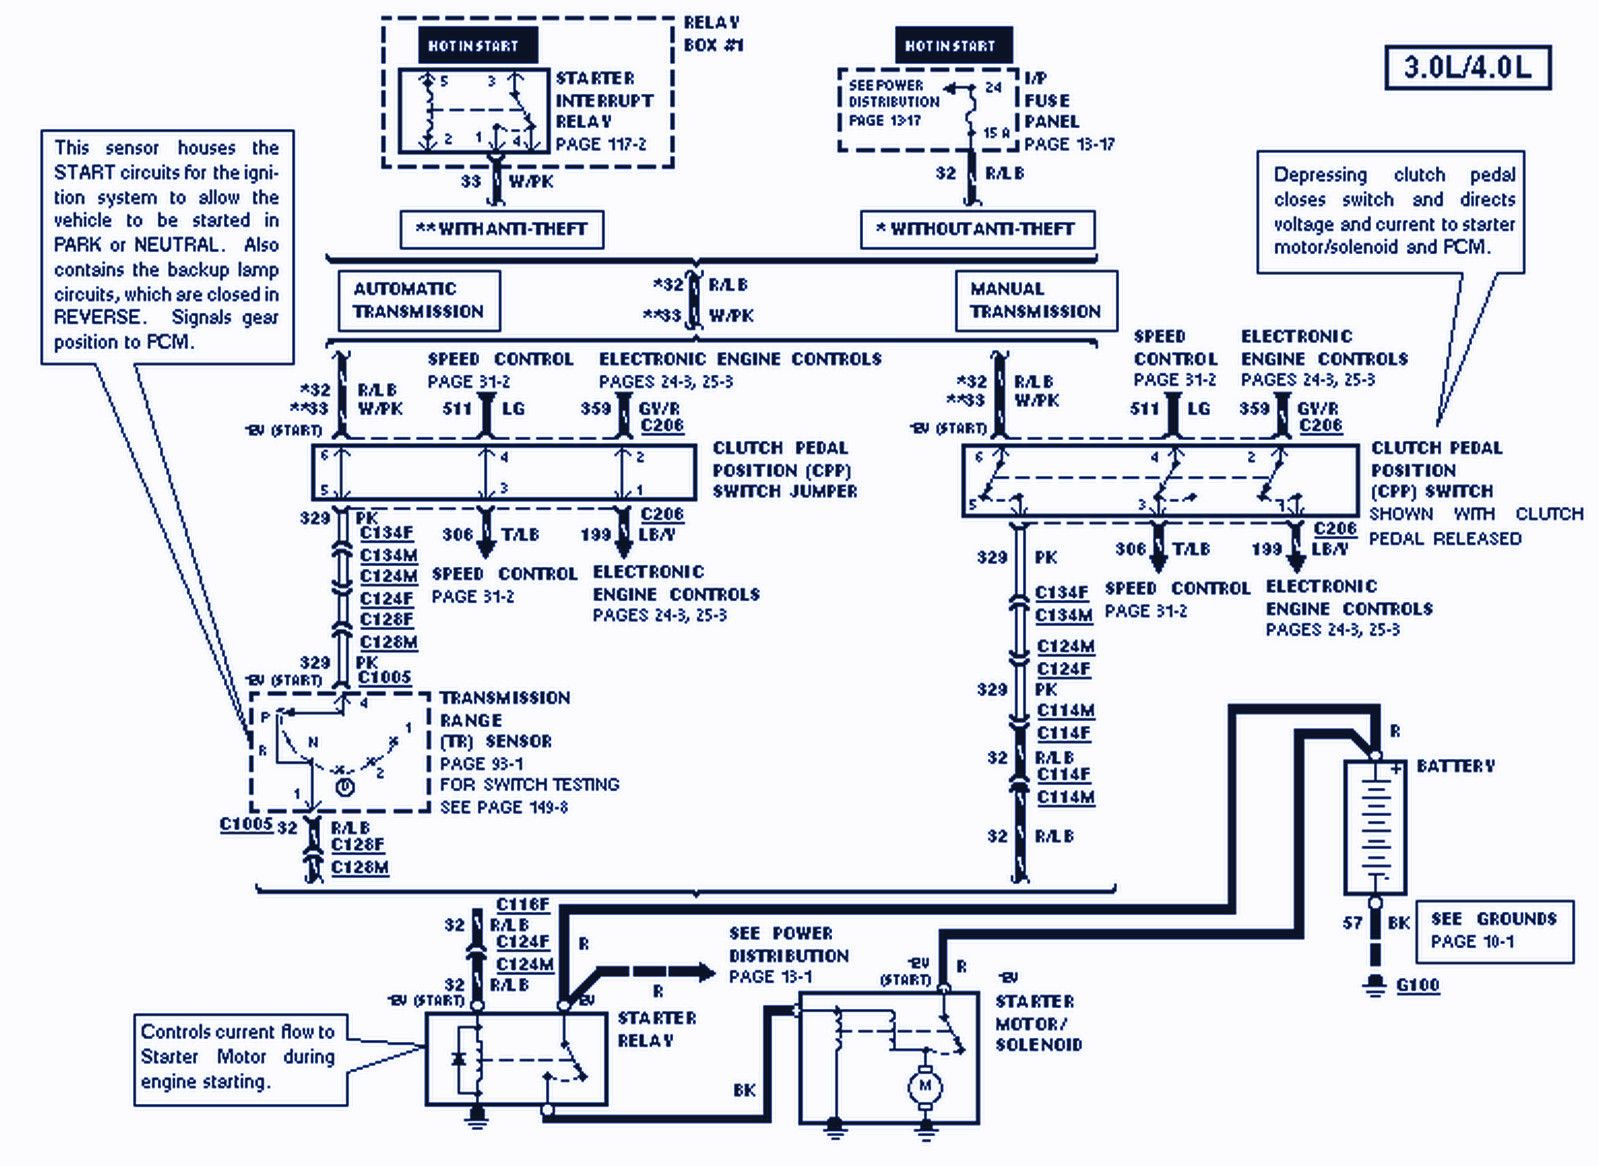 1998 Ford ranger engine wiring diagram #8 | Ford ranger, Ranger, FordPinterest